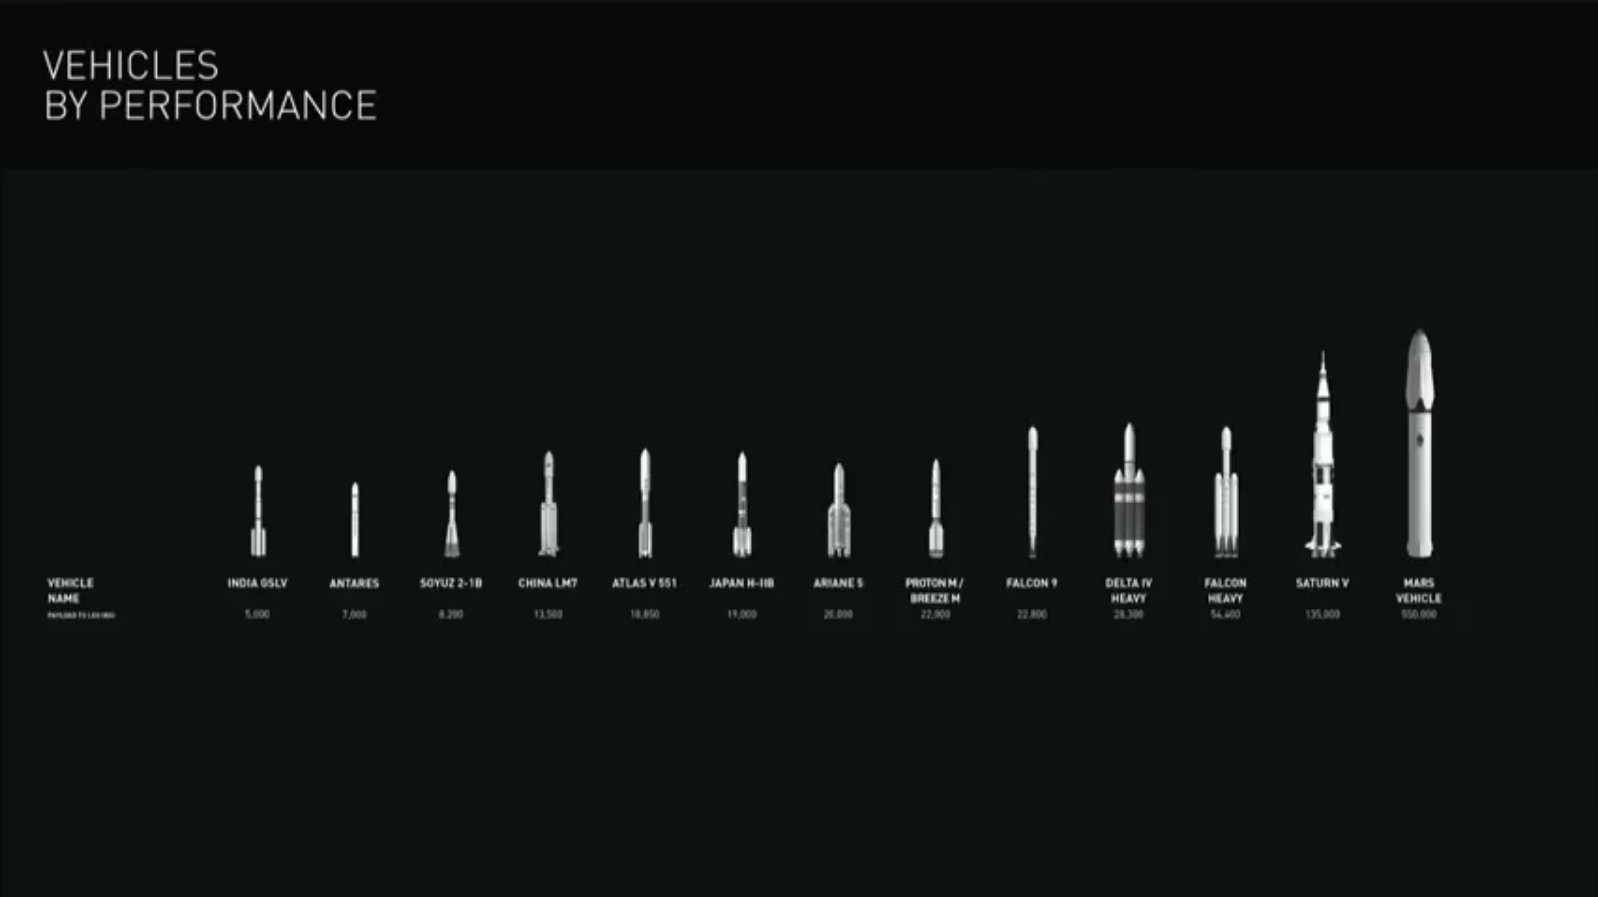 Vehicles by performance. #SpaceX #Mars #IAC2016 https://t.co/nyrFPyDlzO